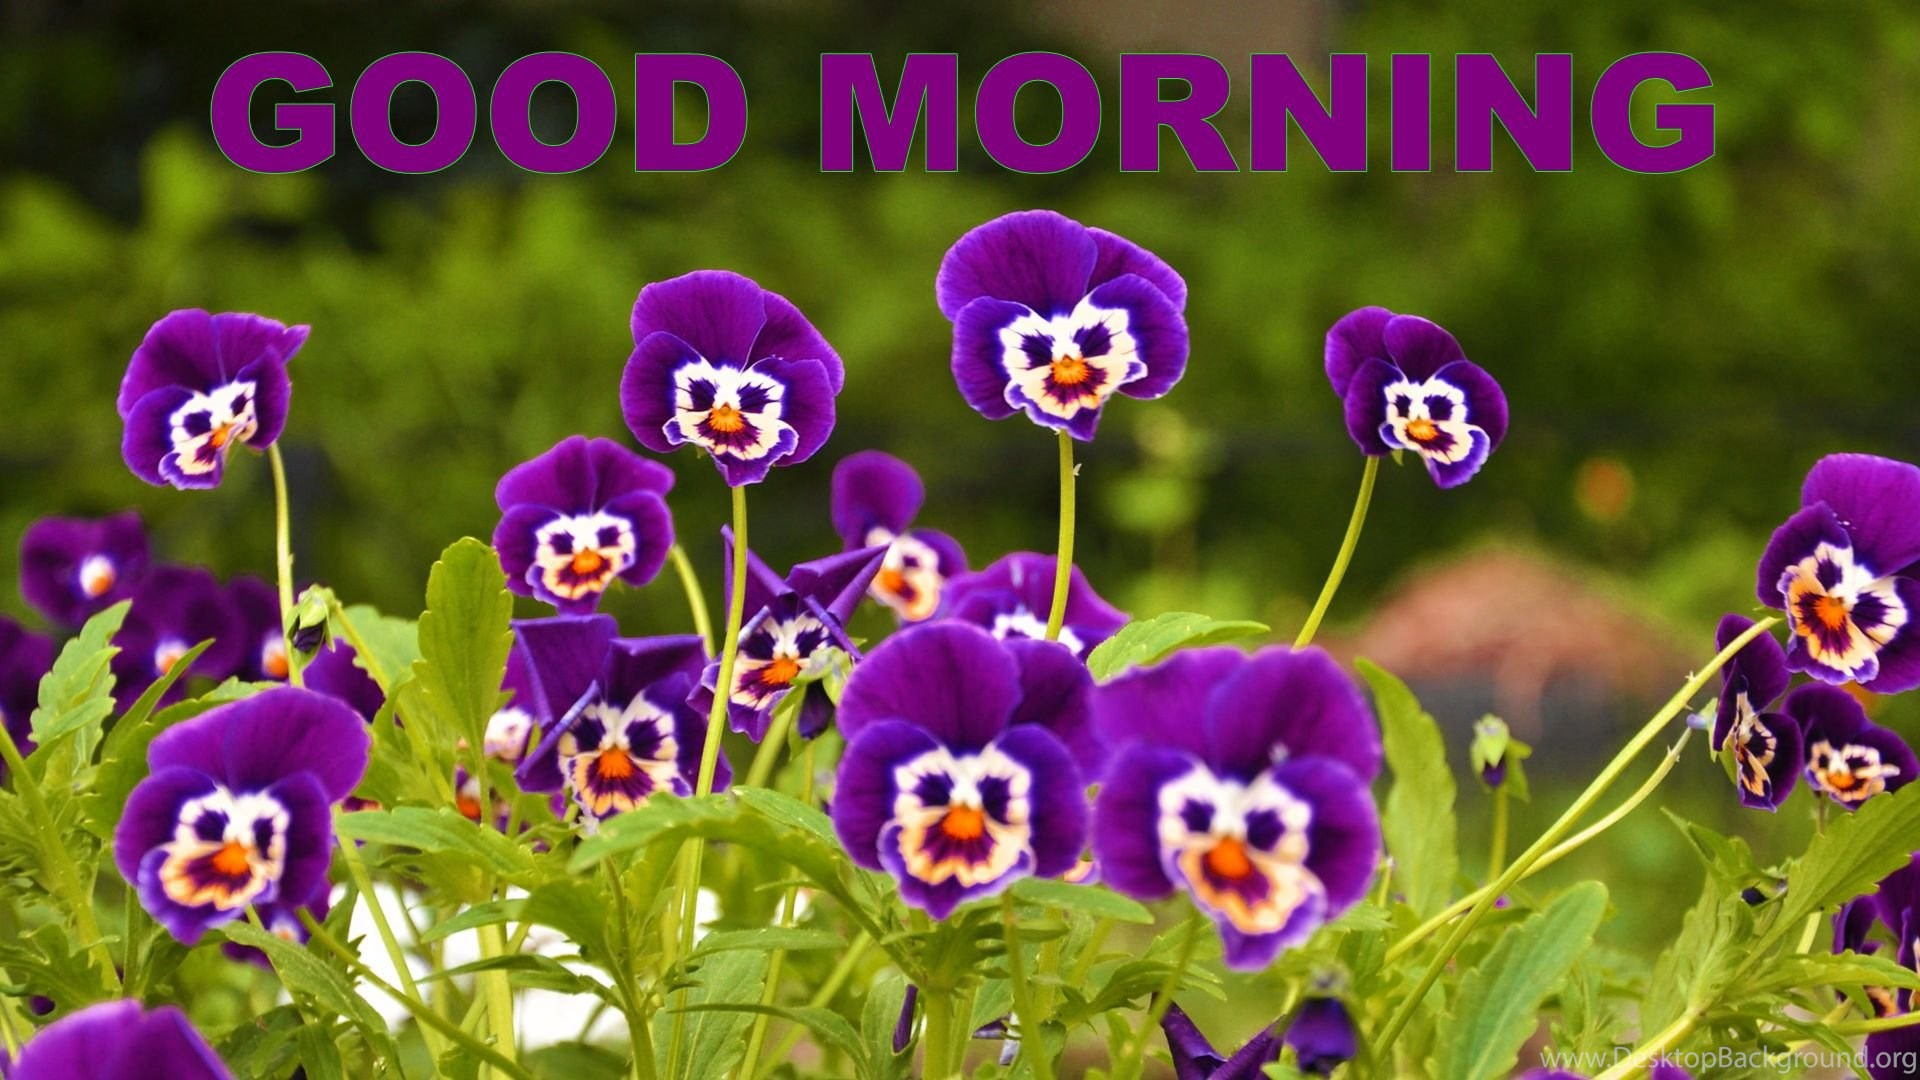 Good Morning Pansy Flower HD Wallpapers Desktop Background